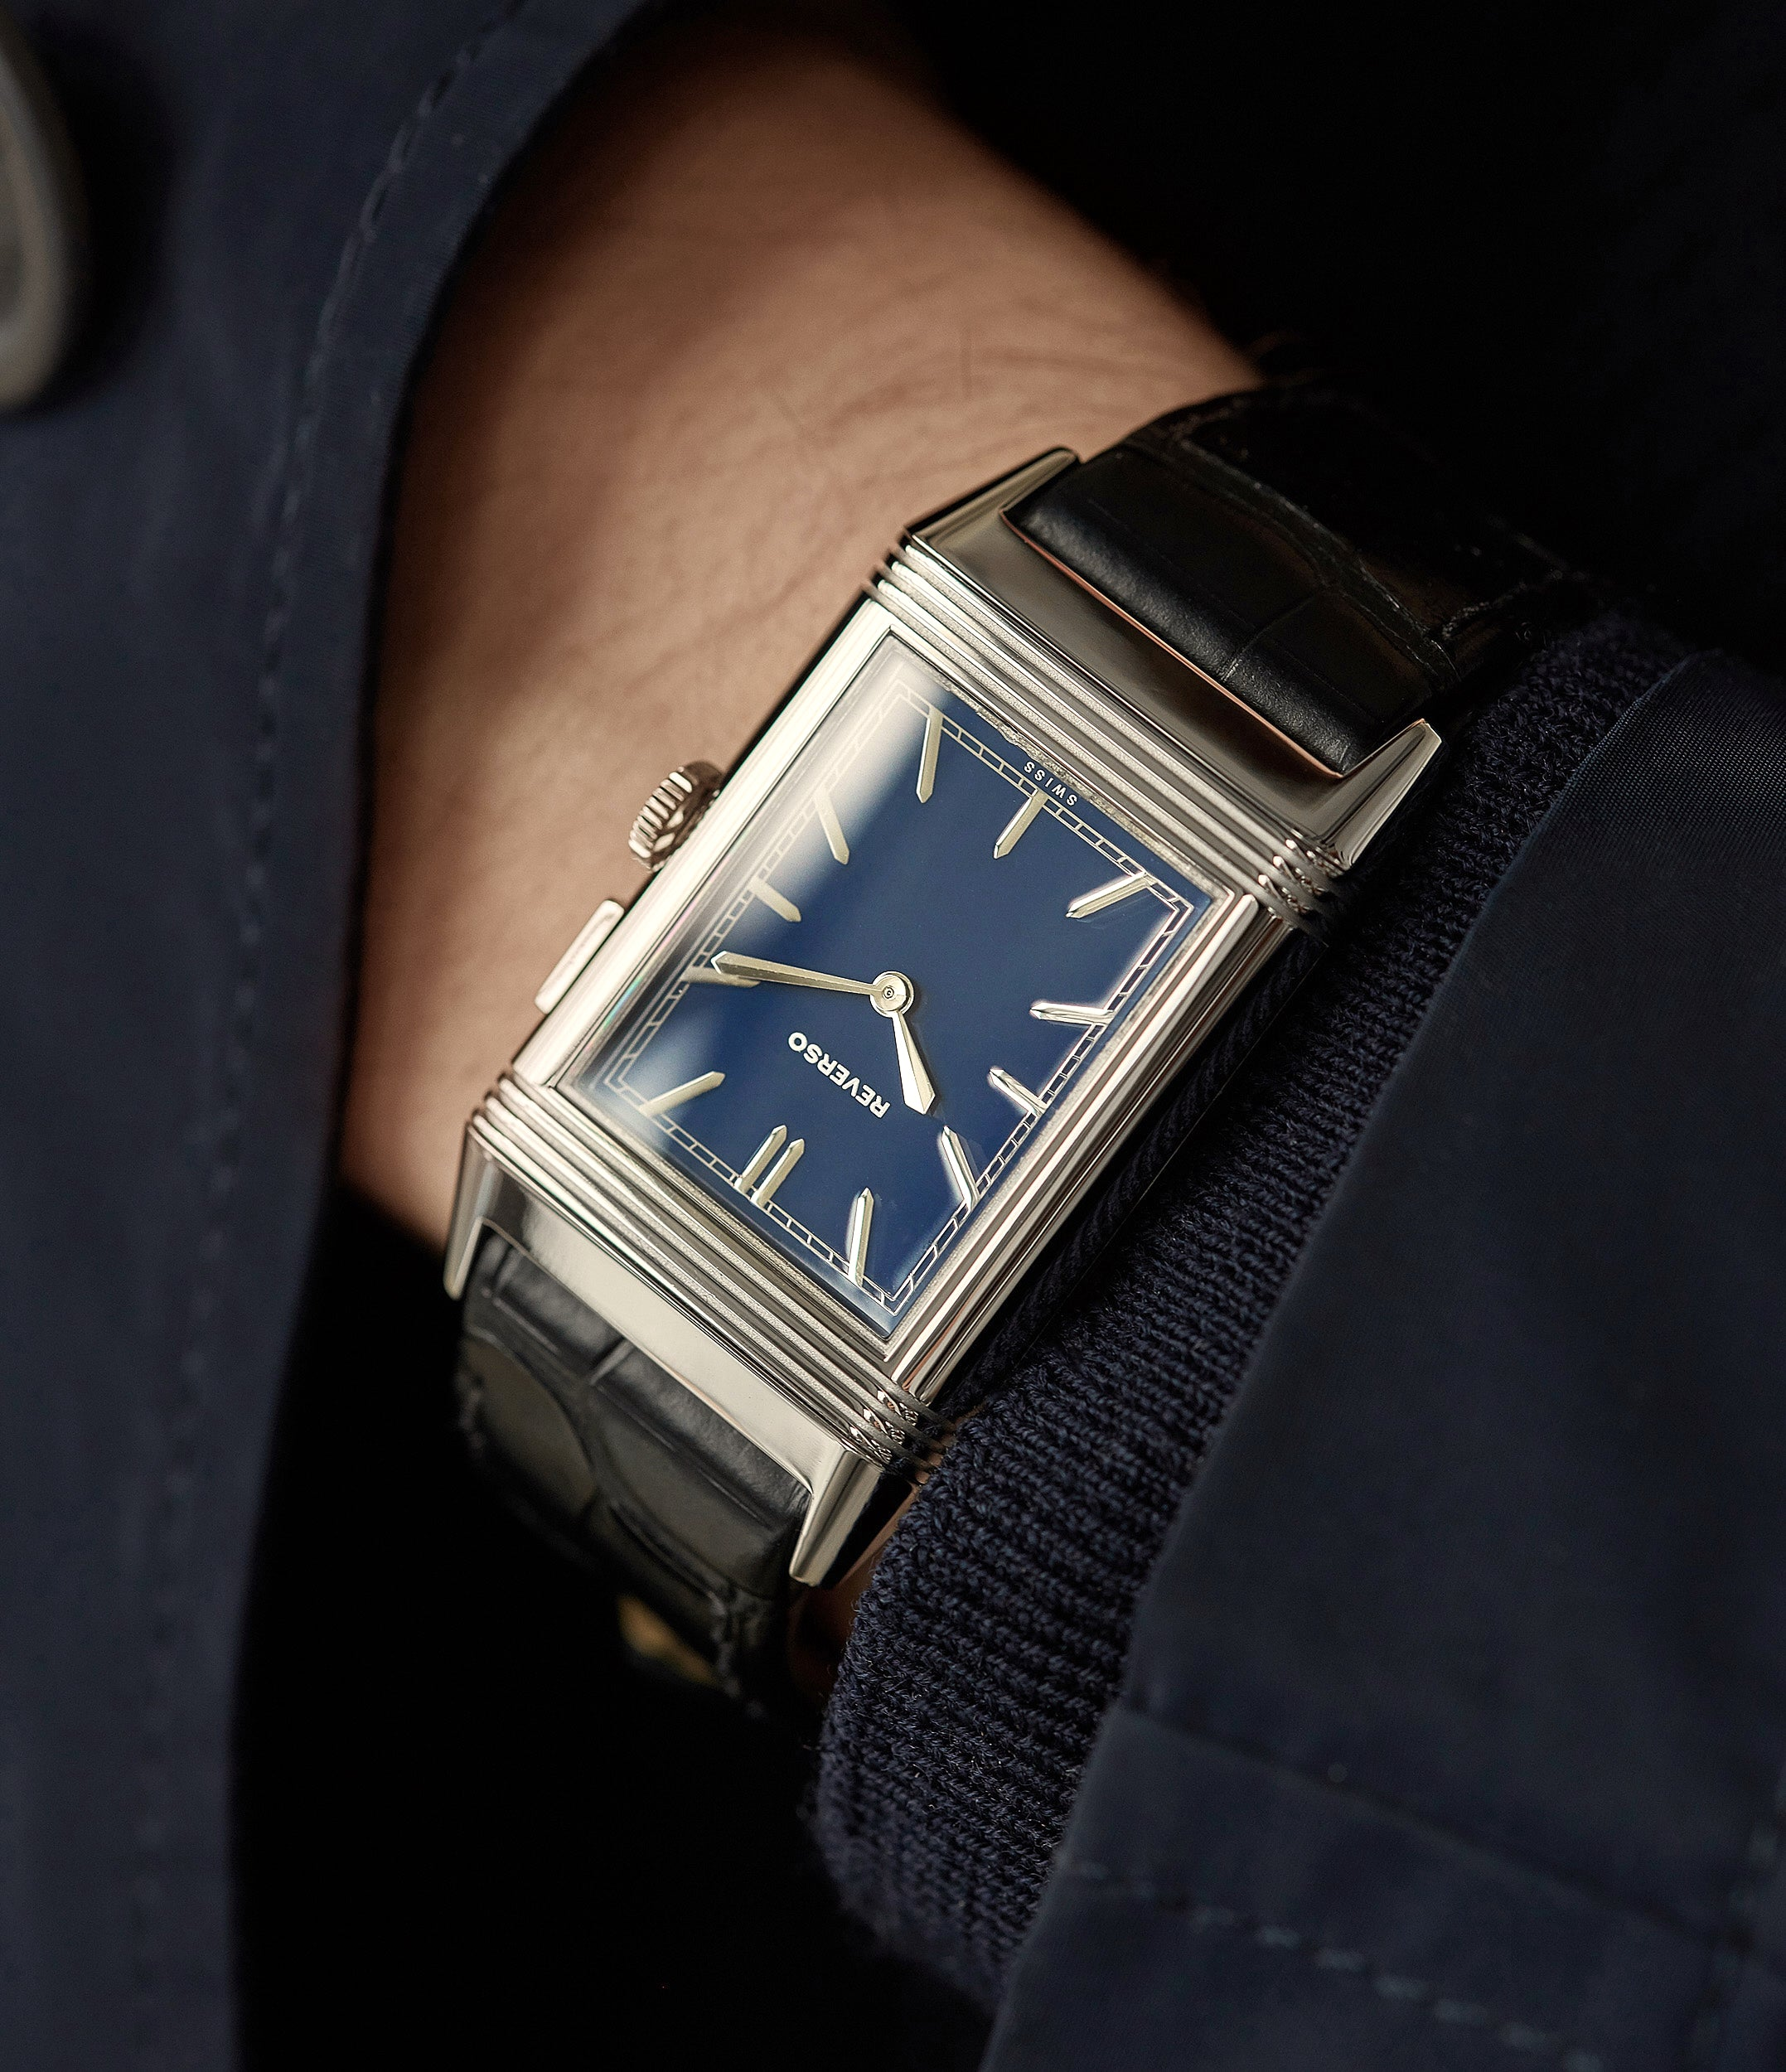 gent's dress watch Jaeger-LeCoultre Grand Reverso Duoface Blue Ultra-Thin Boutique Edition 278.8.54 steel preowned traveller